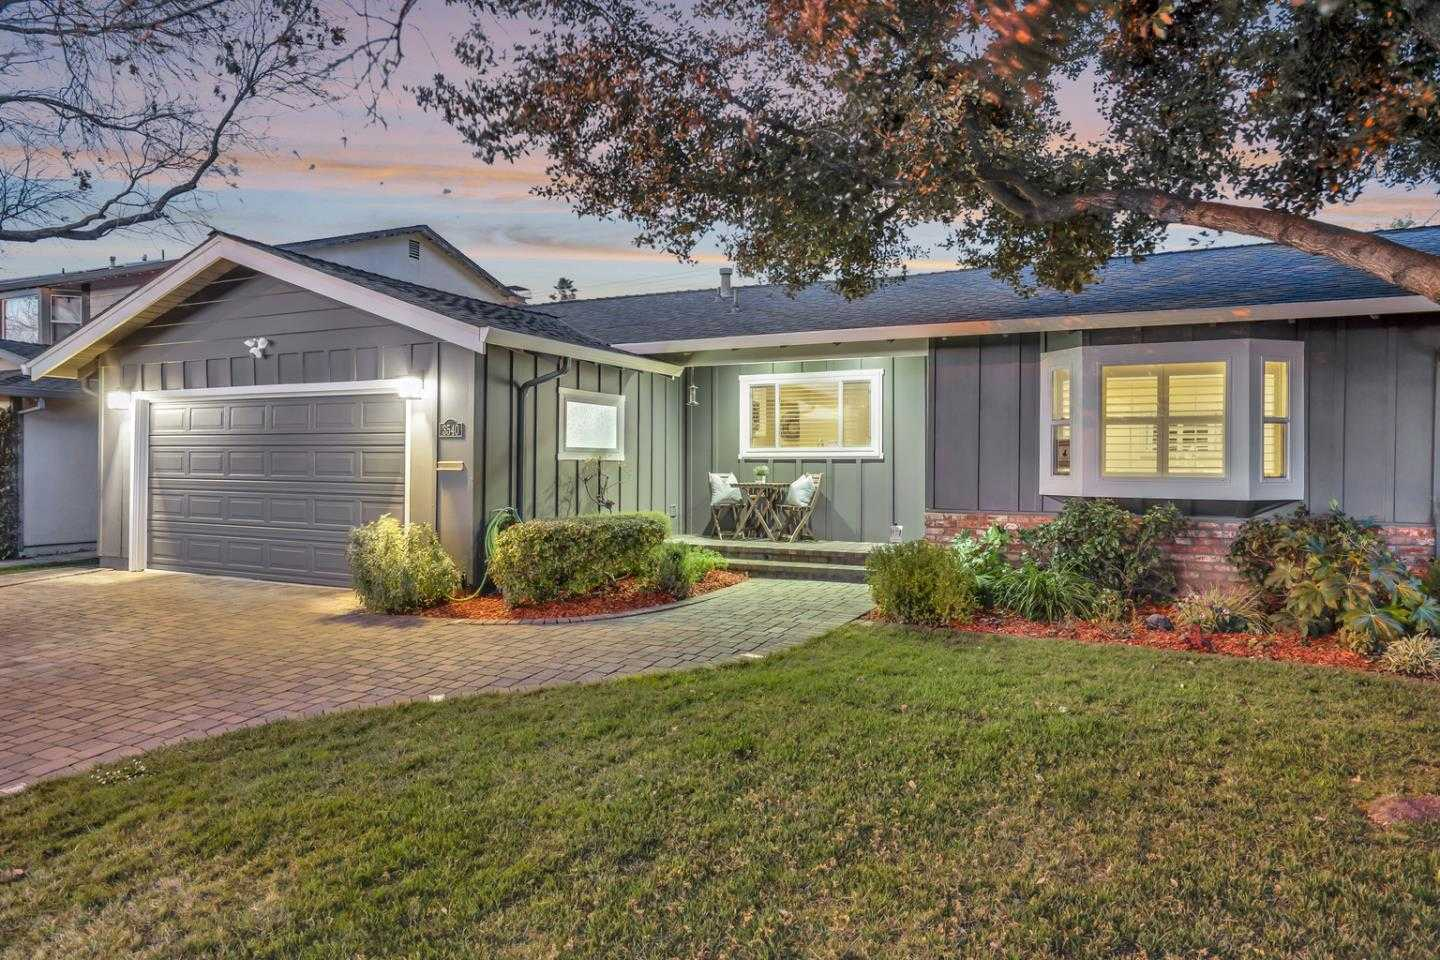 $1,238,888 - 3Br/2Ba -  for Sale in San Jose